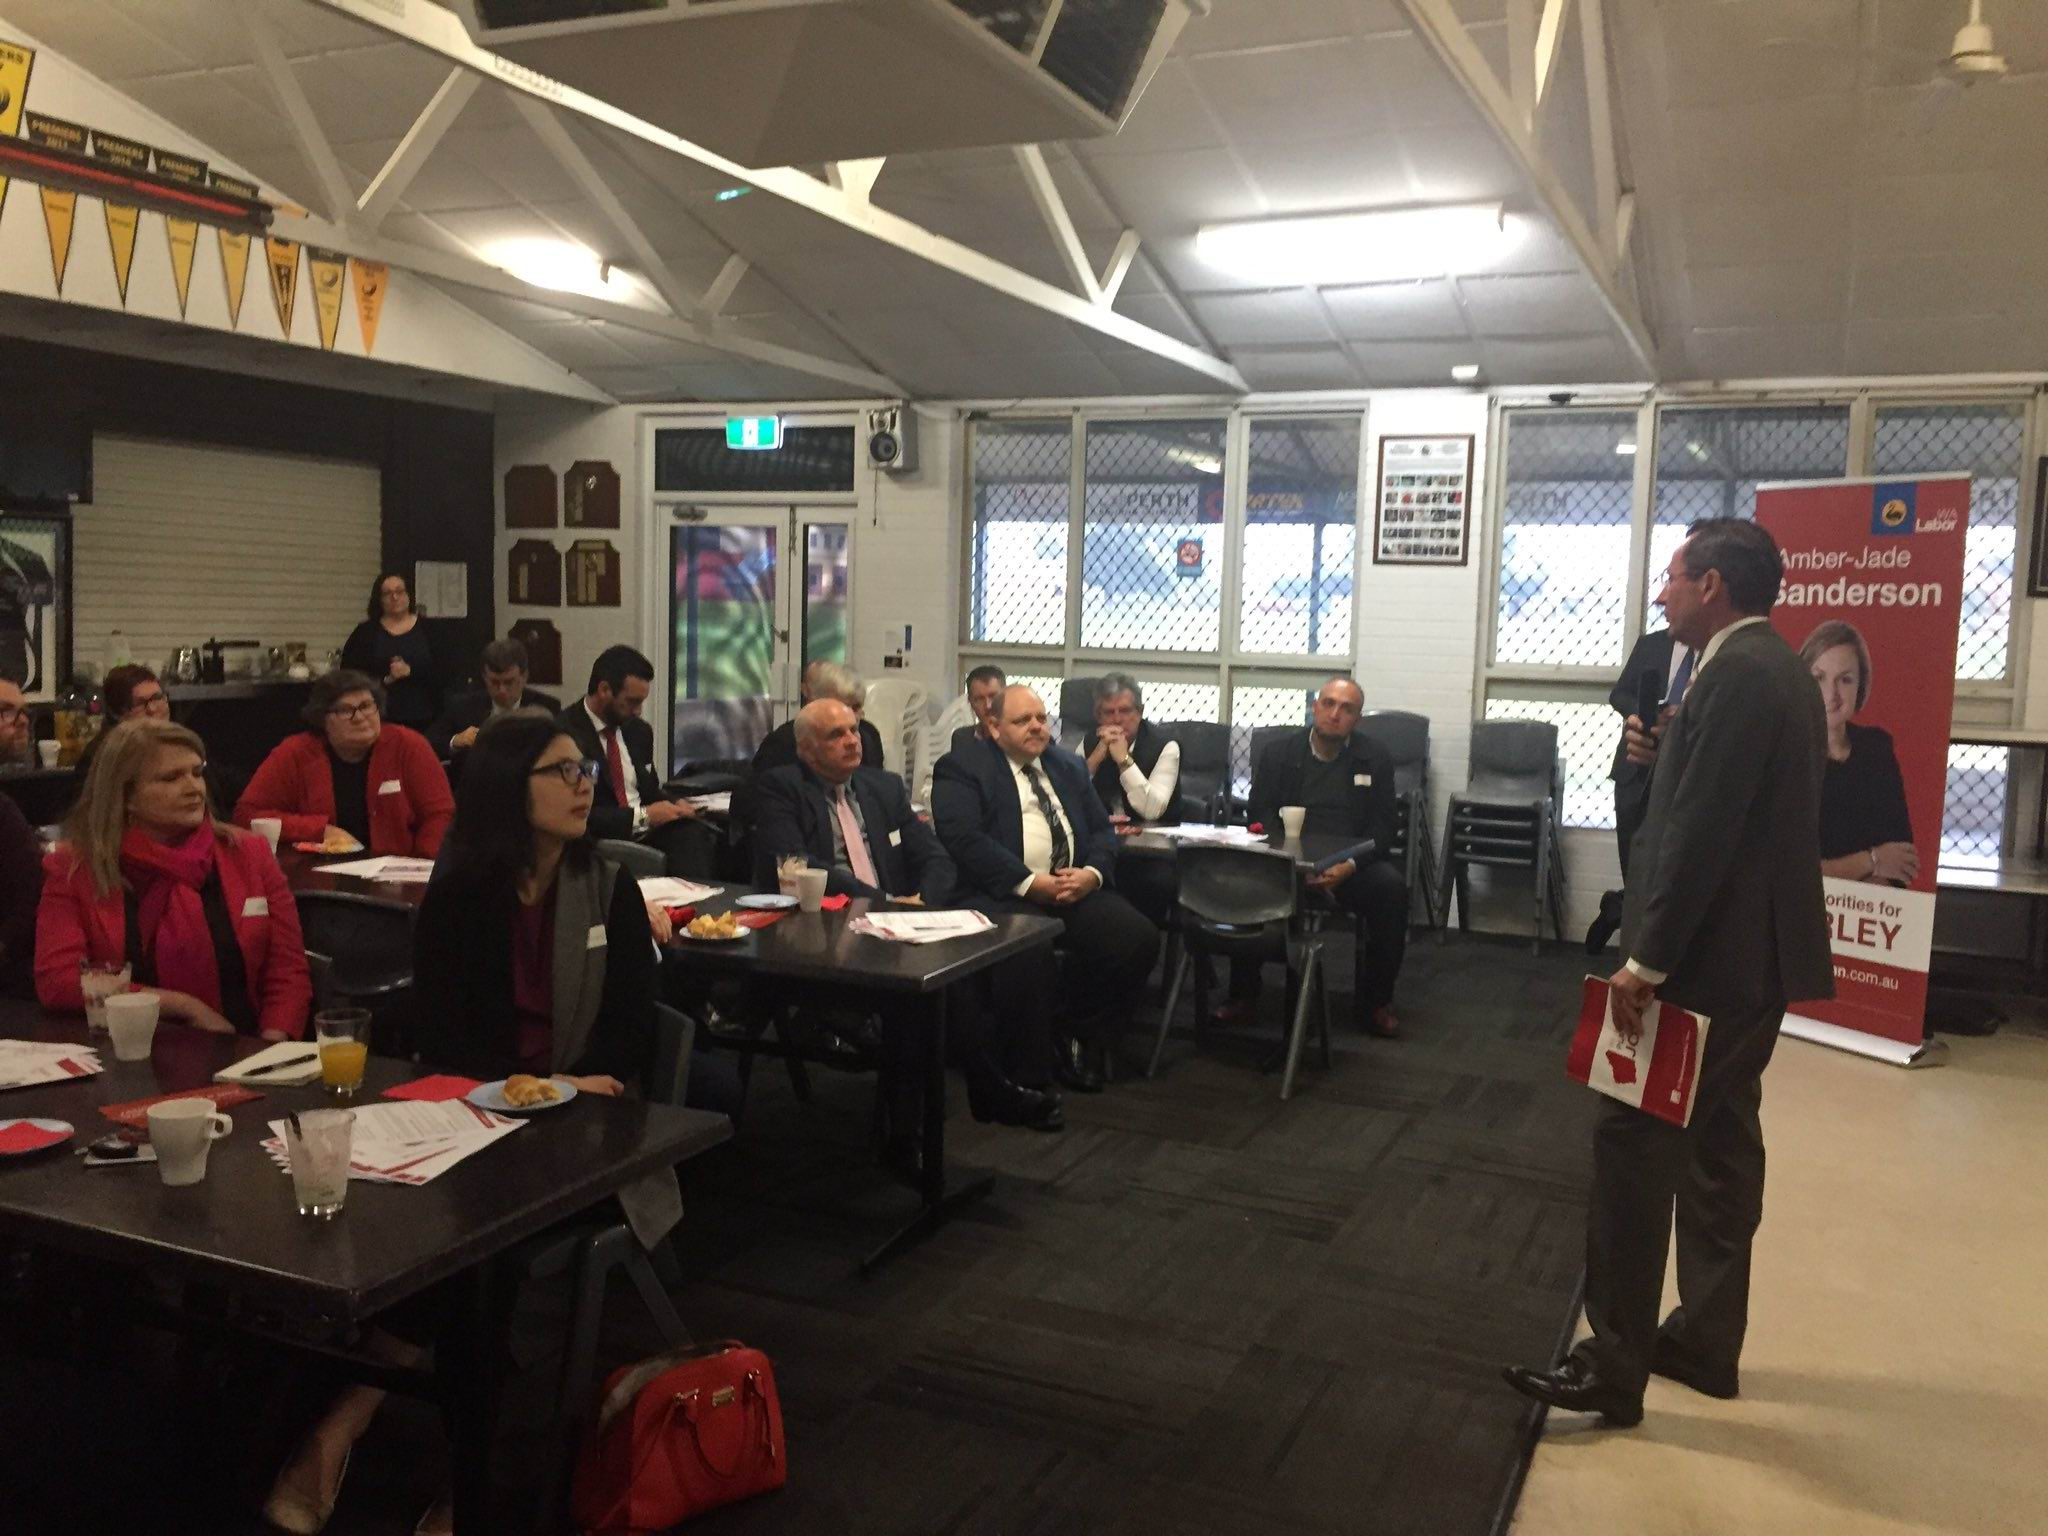 WA Labor Leader Mark McGowan addresses attendees of this morning's breakfast. Picture: Amber-Jade Sanderson/Twitter